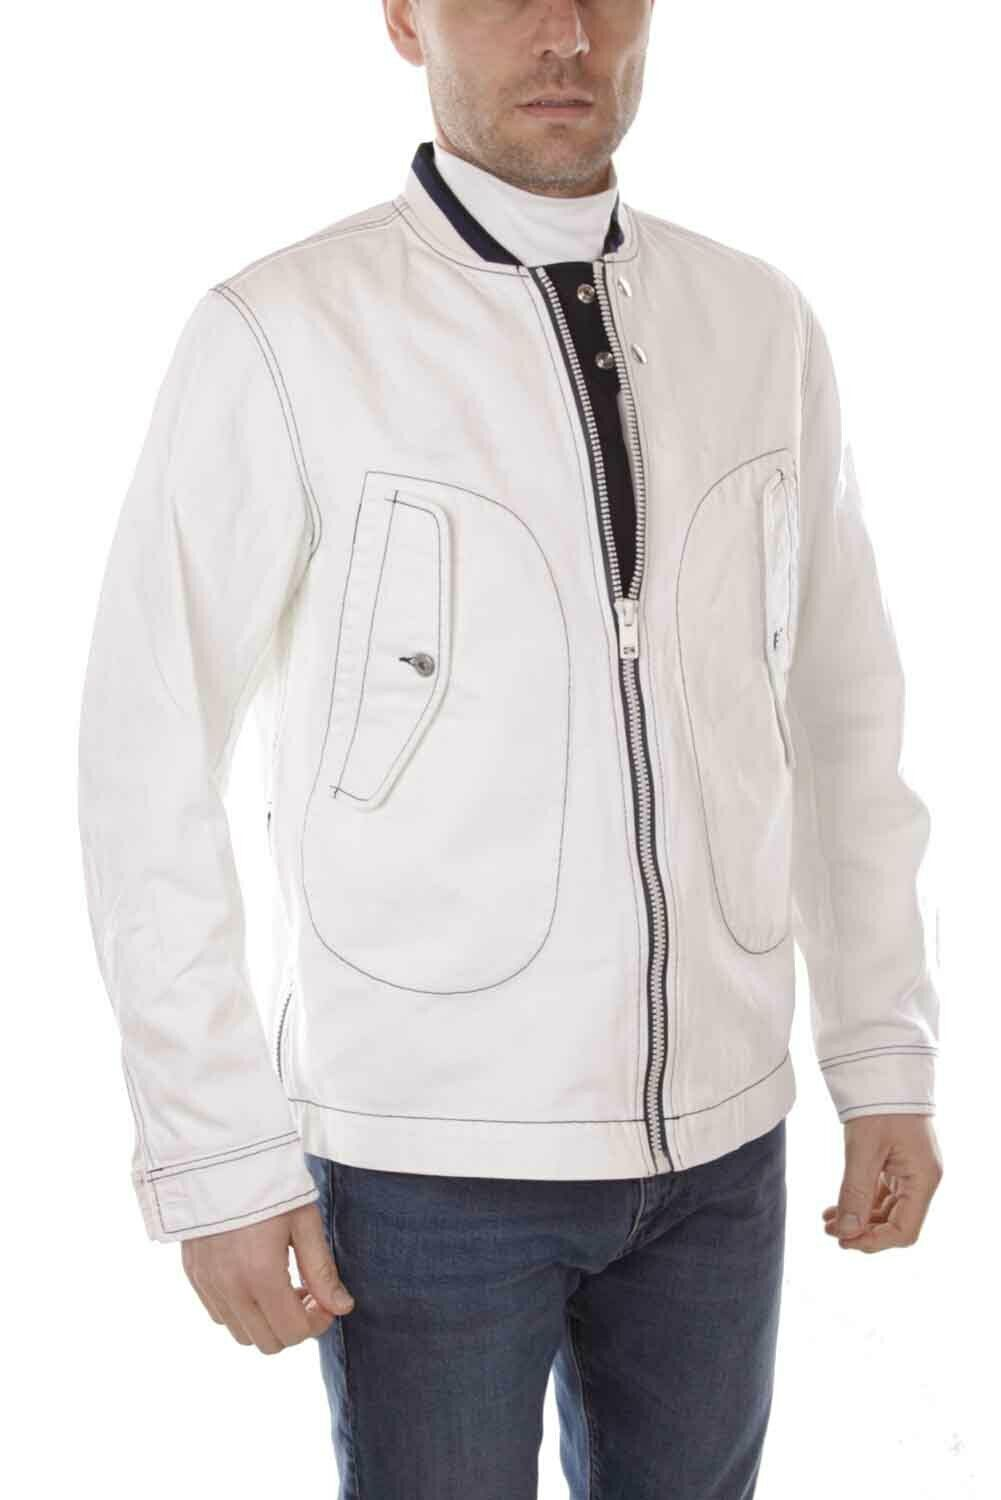 Diesel D-Darcy Giacca Hombre Denim Chaqueta whiteo size L